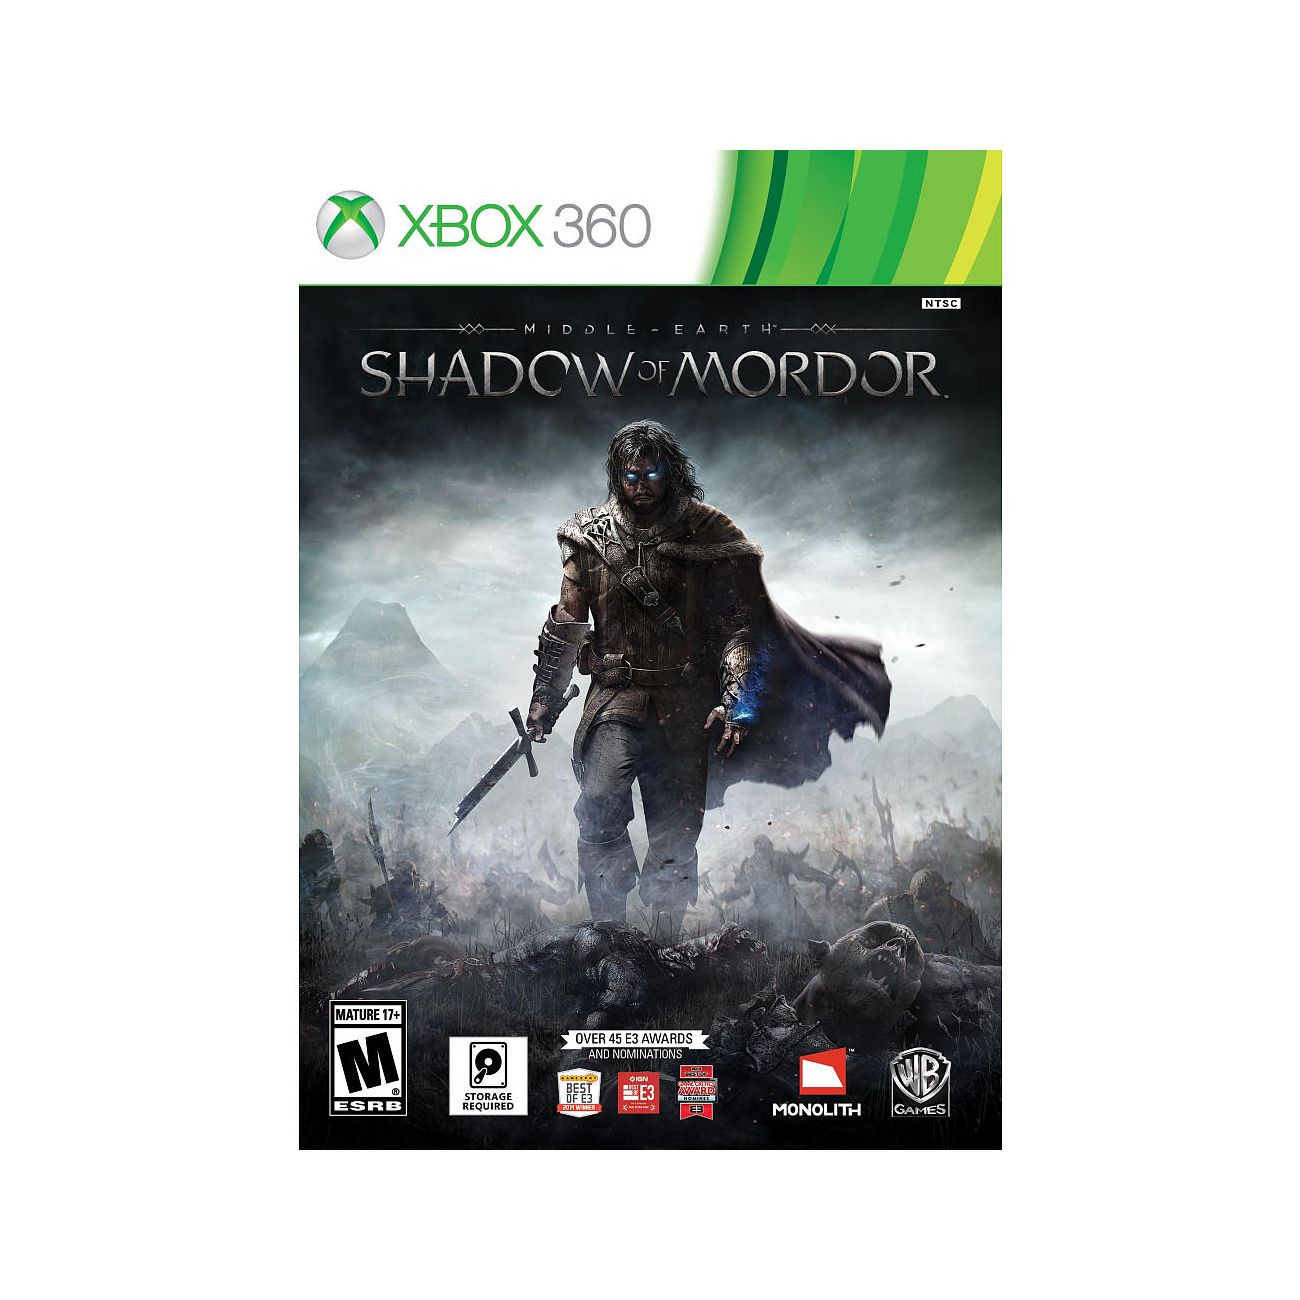 XBOX 360 Middle Earth Shadow of Mordor